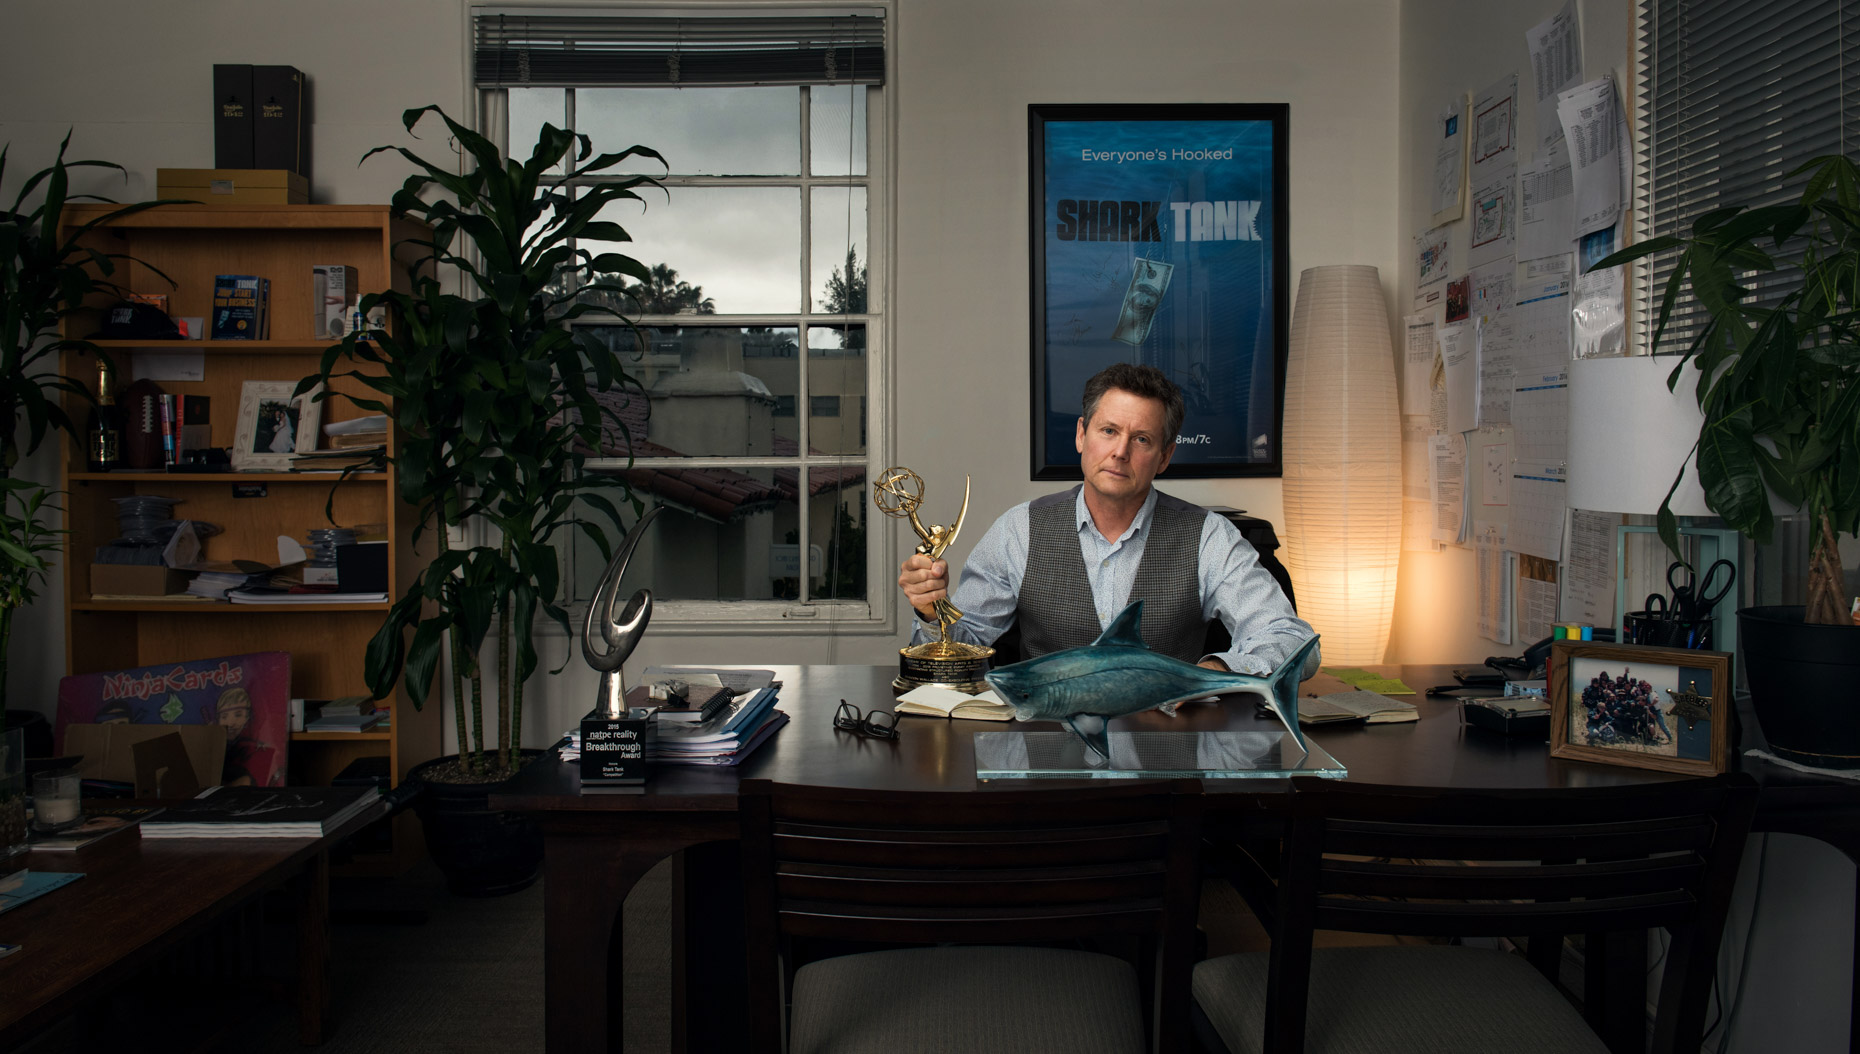 shark-tank-producer-clay-newbill-in-his-office